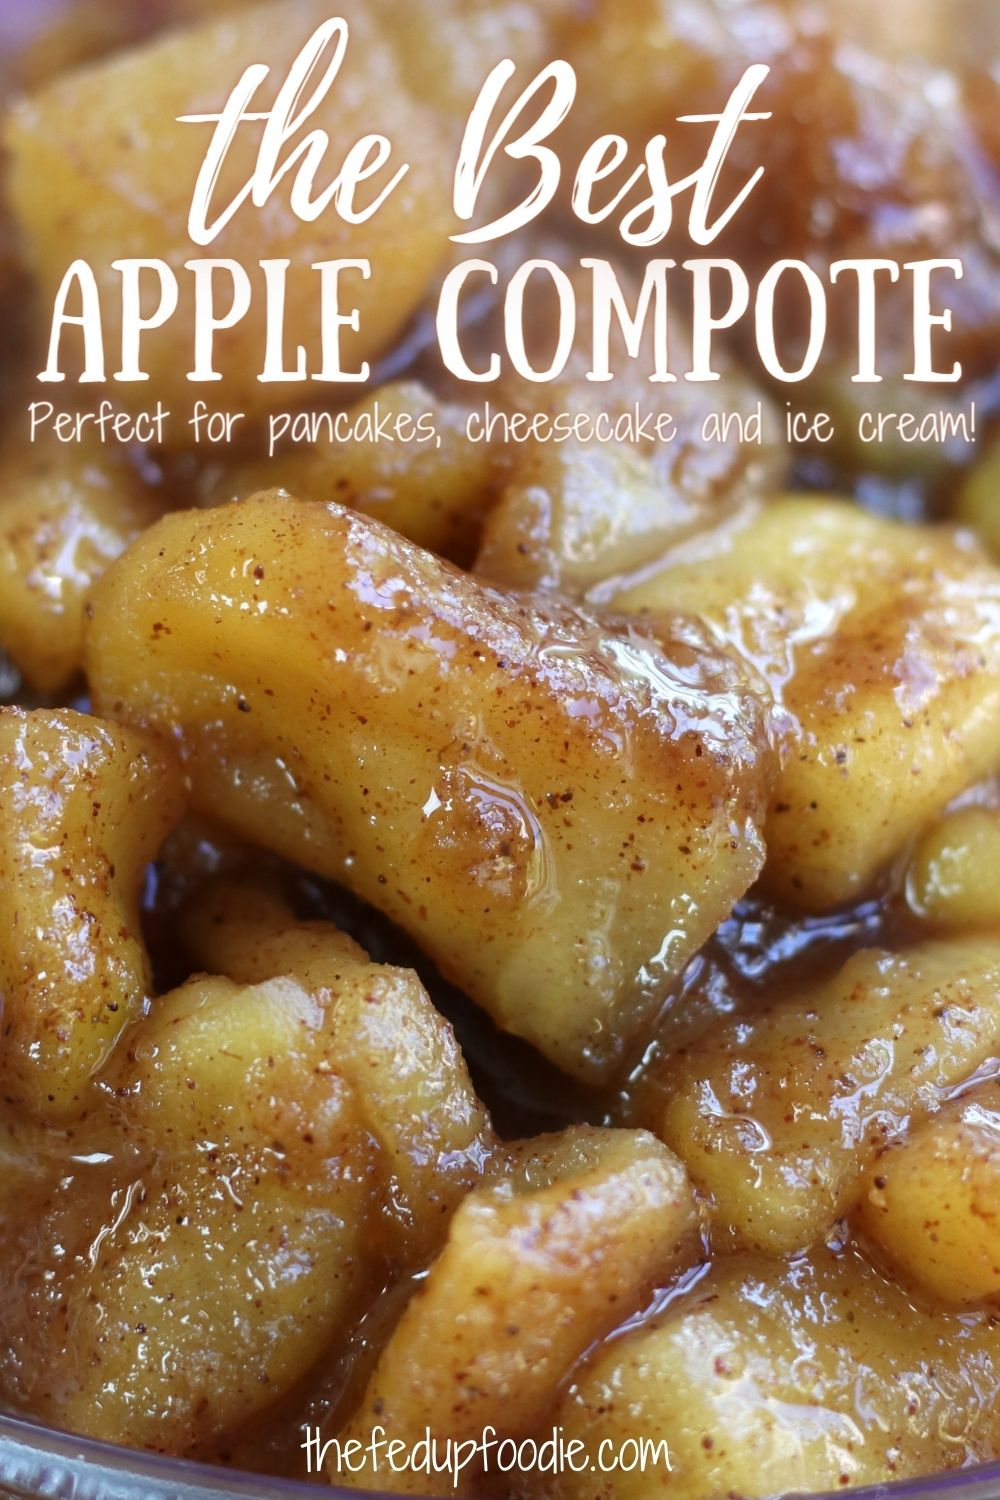 Apple Compote is a quick and easy fruit topping that tastes incredibly gourmet. Seasoned with aromatic cinnamon, nutmeg and ginger, this compote is the perfect finishing tough on pancakes, gingerbread and ice cream. #AppleCompoteRecipe #AppleCompote #AppleCompoteRecipeSimple #AppleCompoteRecipeHealthy #AppleCompoteRecipeBreakfast #AppleCompoteForPancakes